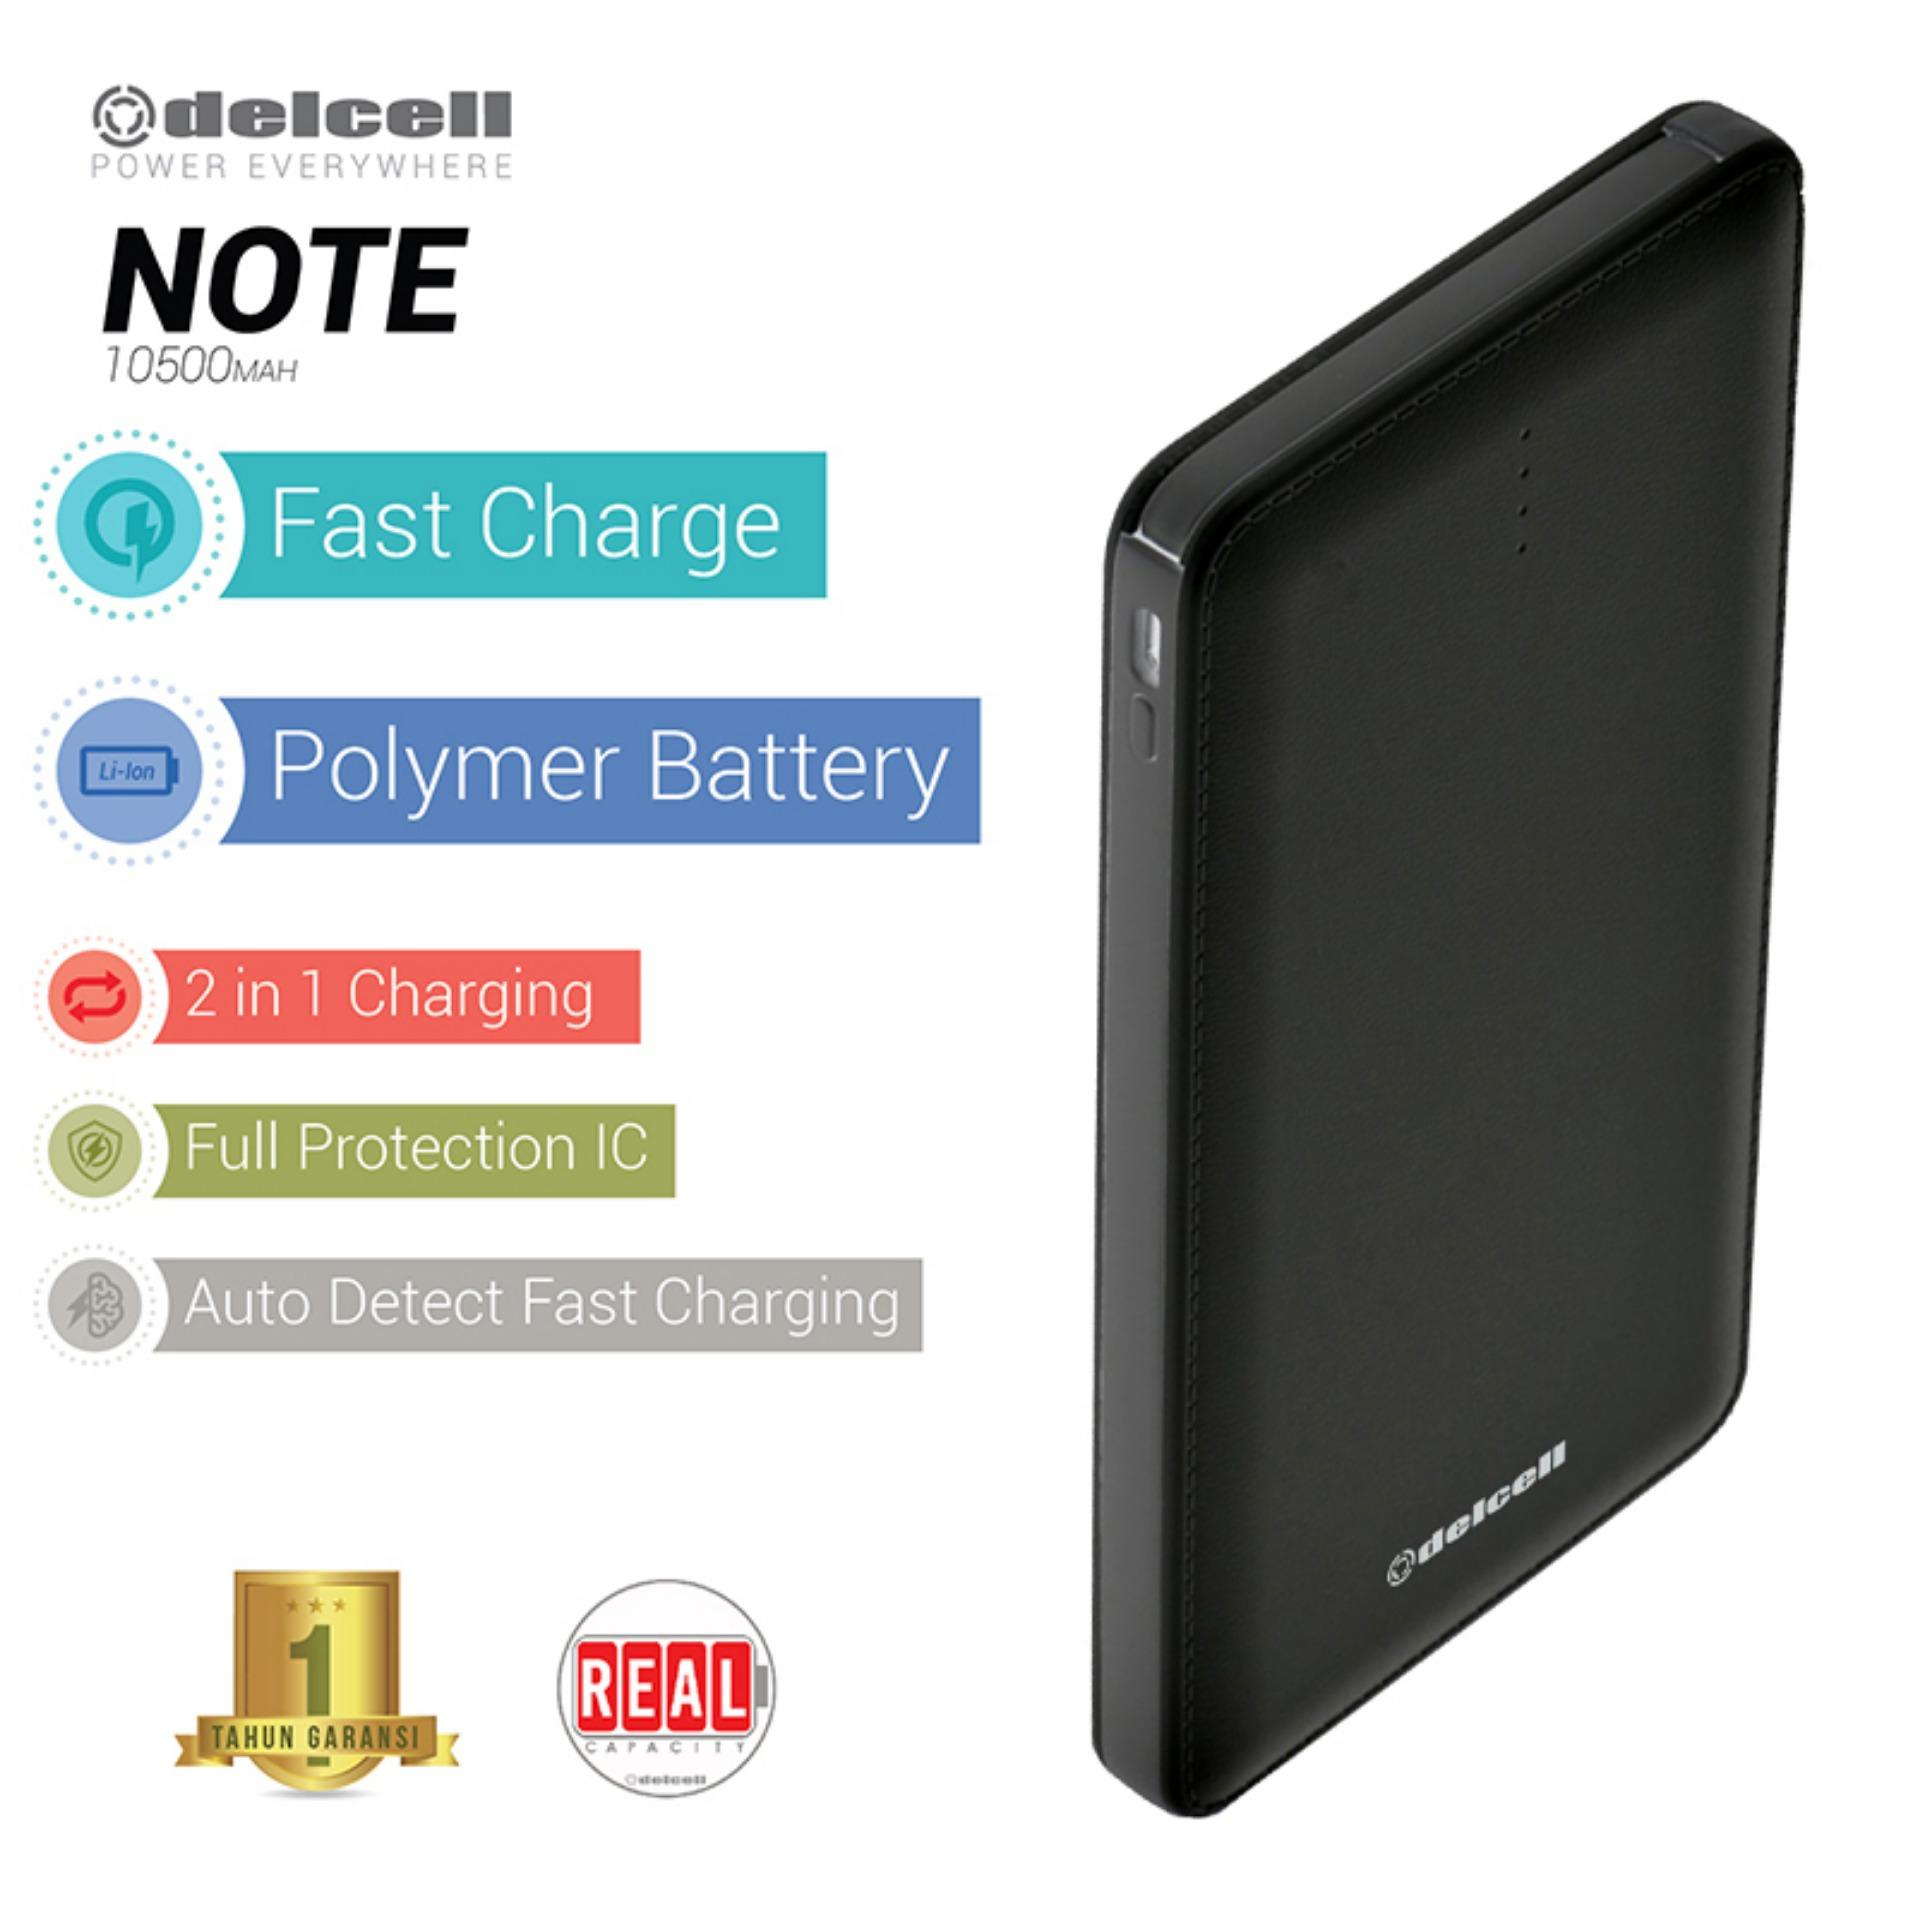 Delcell 10500mAh Powerbank NOTE Real Capacity Slim Powerbank Polymer Battery Build in Cable Fast Charging Garansi Resmi 1 Tahun Power Bank Murah Berkualitas  - Hitam